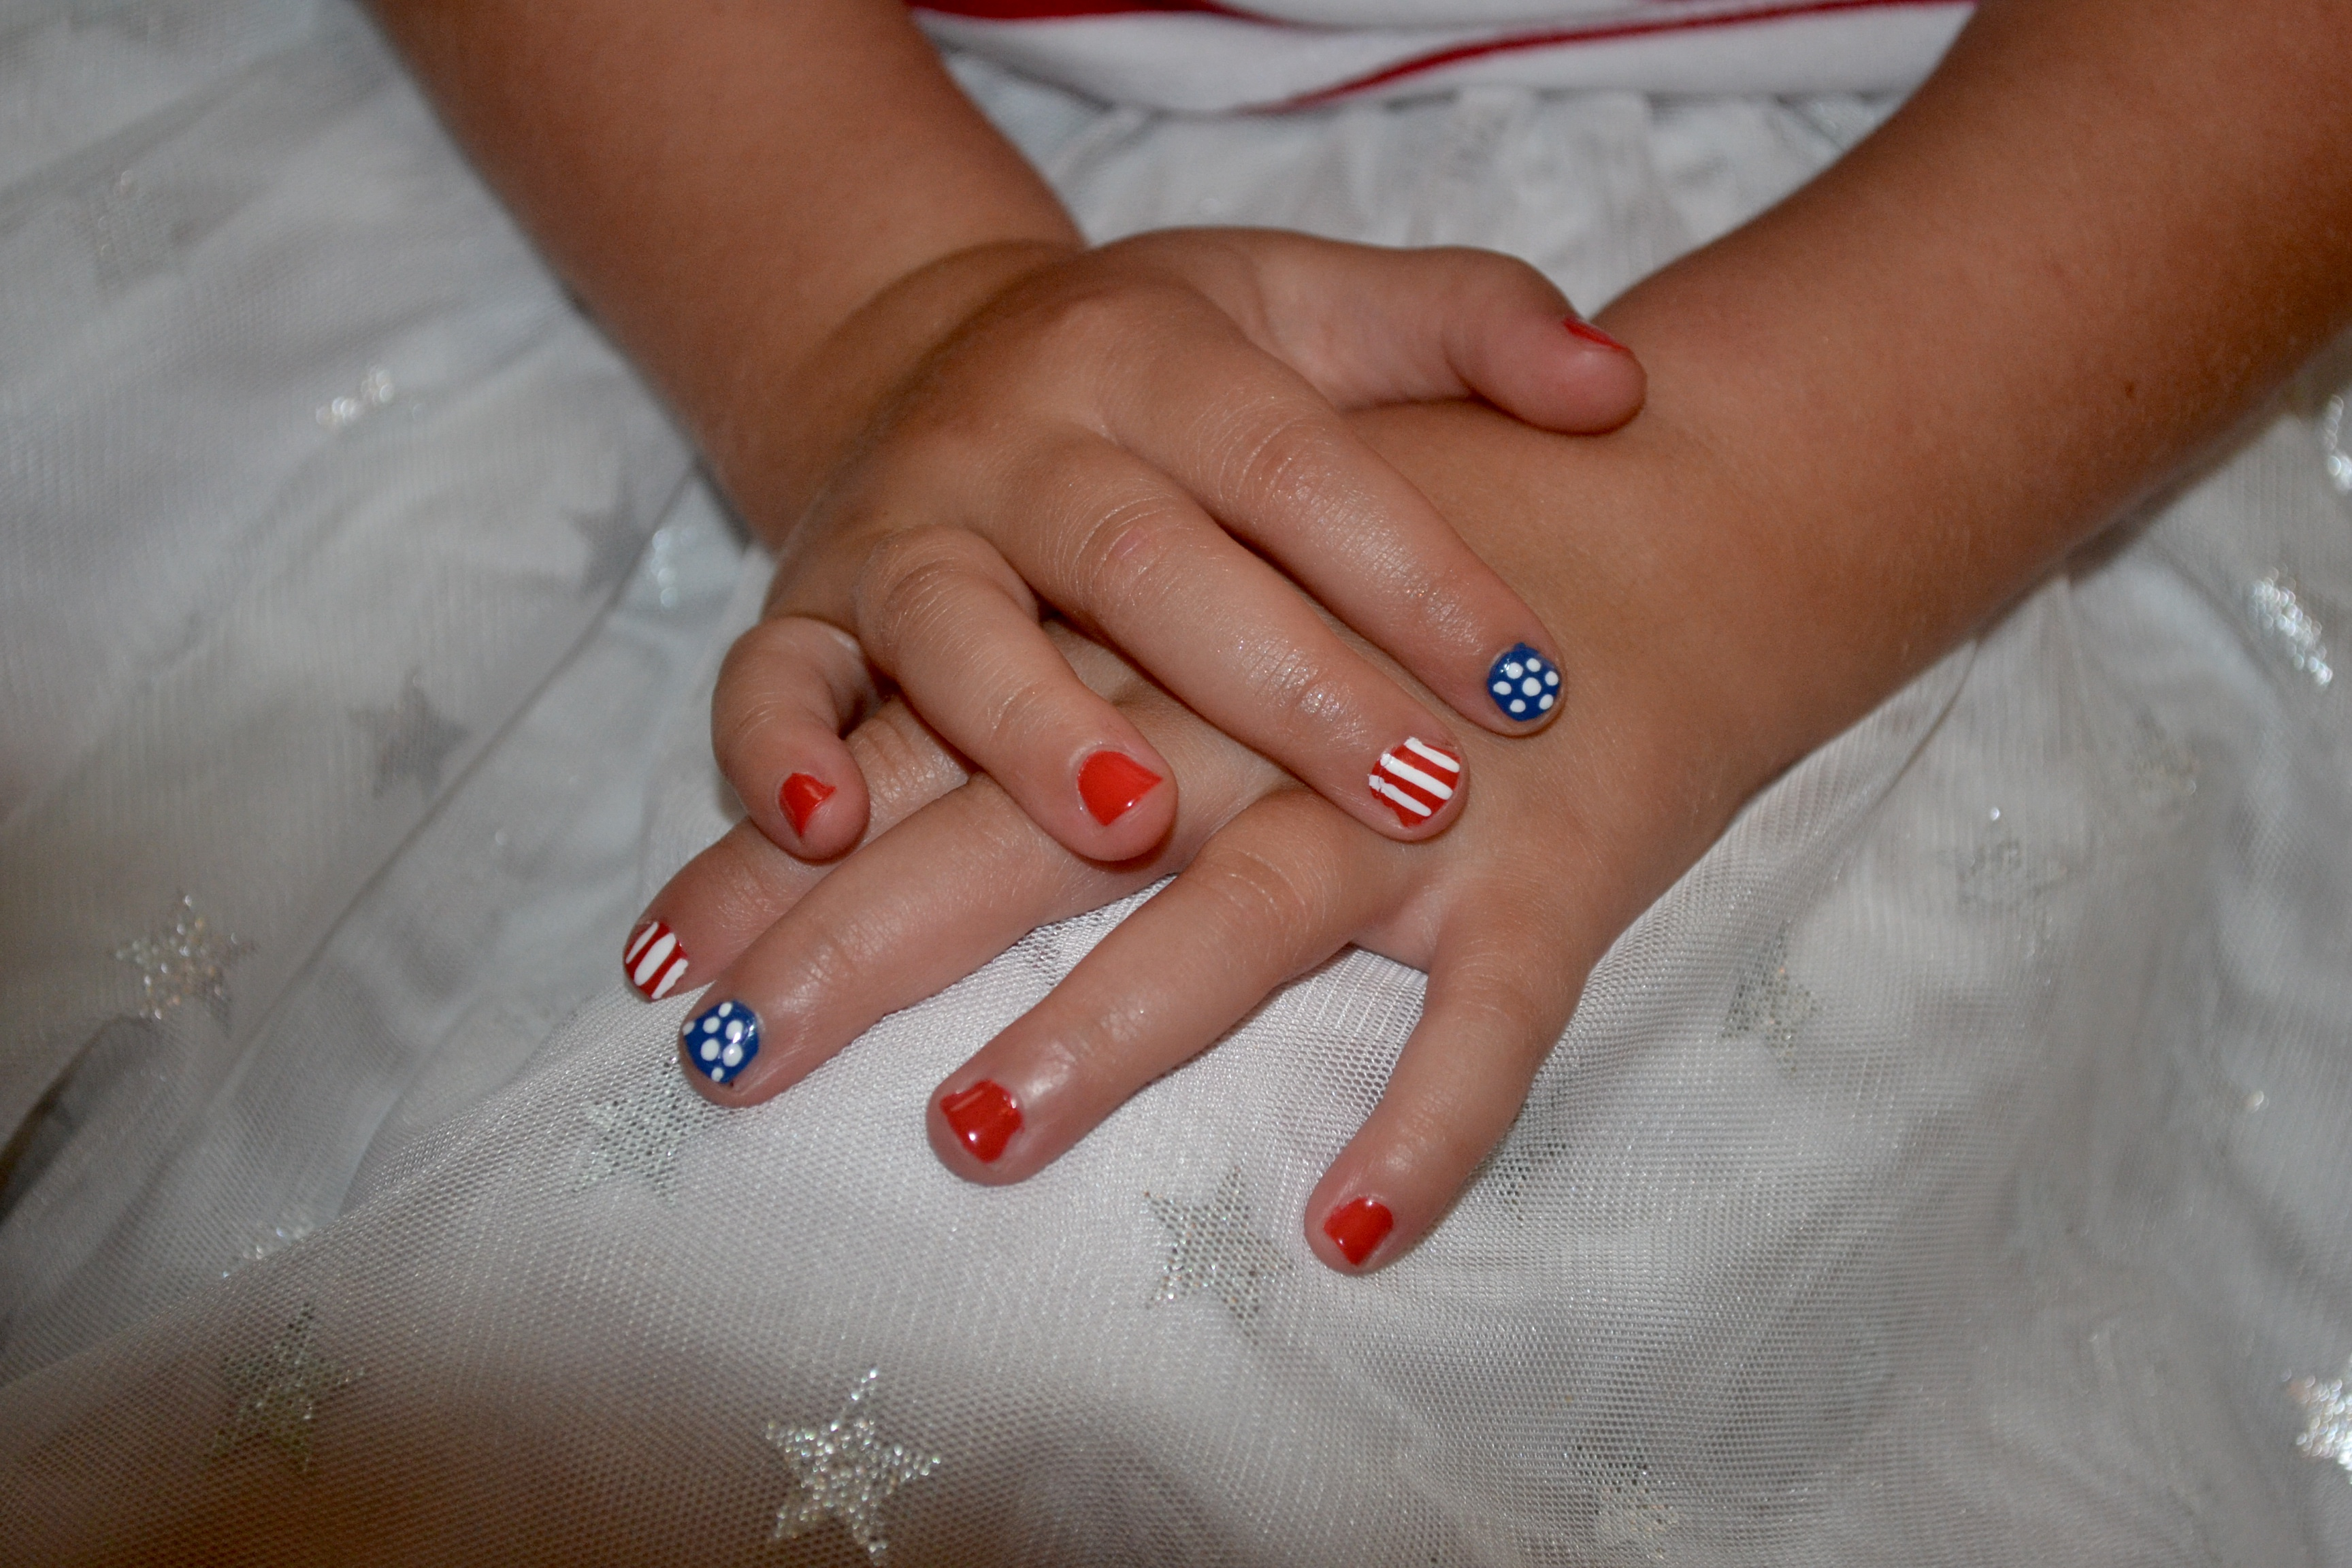 July 4th inspired flag nail art on little girls